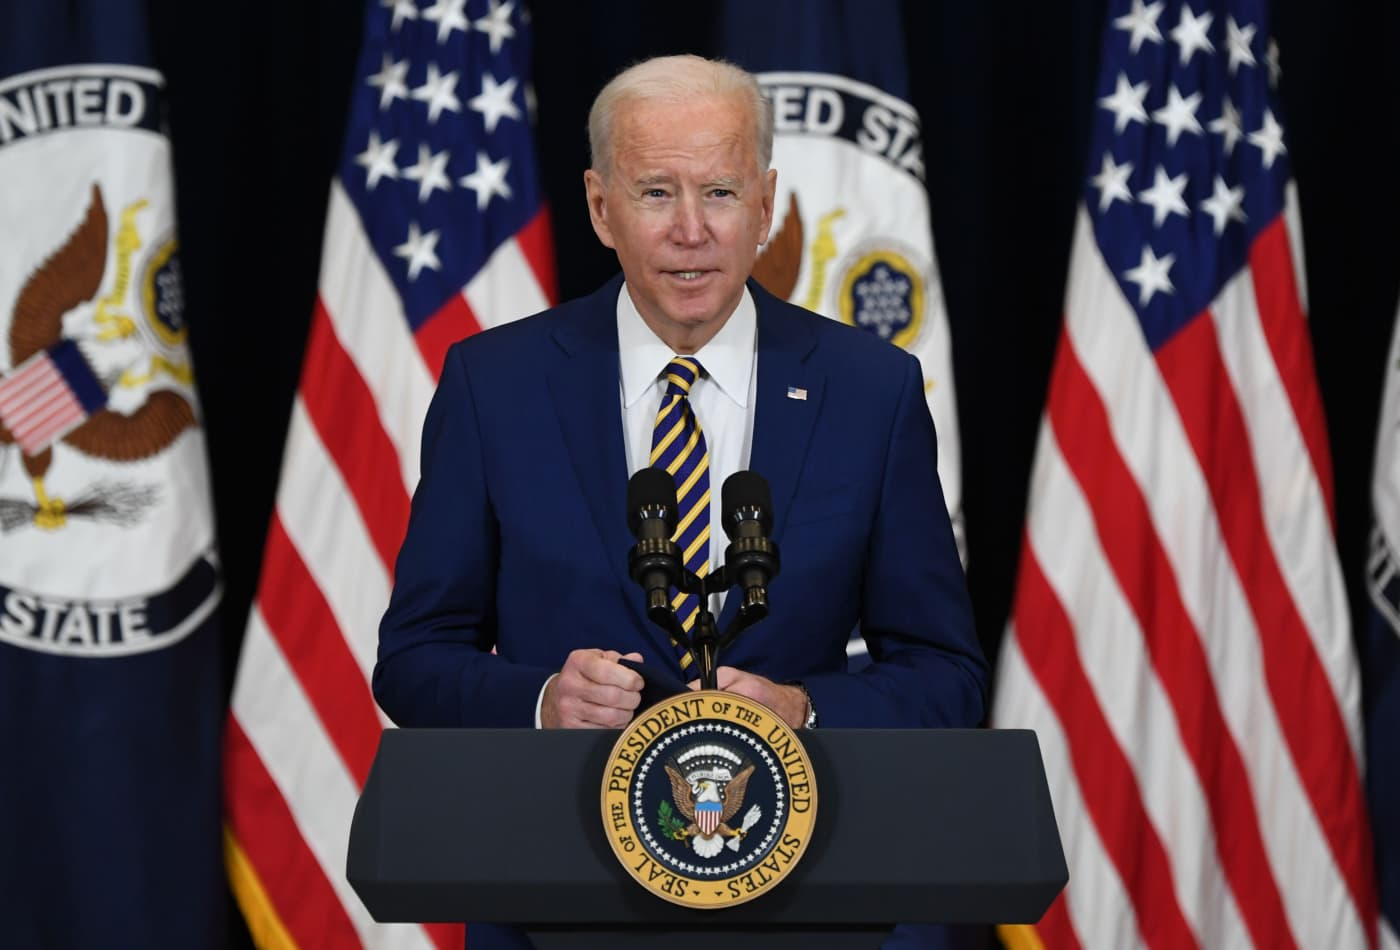 Biden vows to allow more refugees into the United States